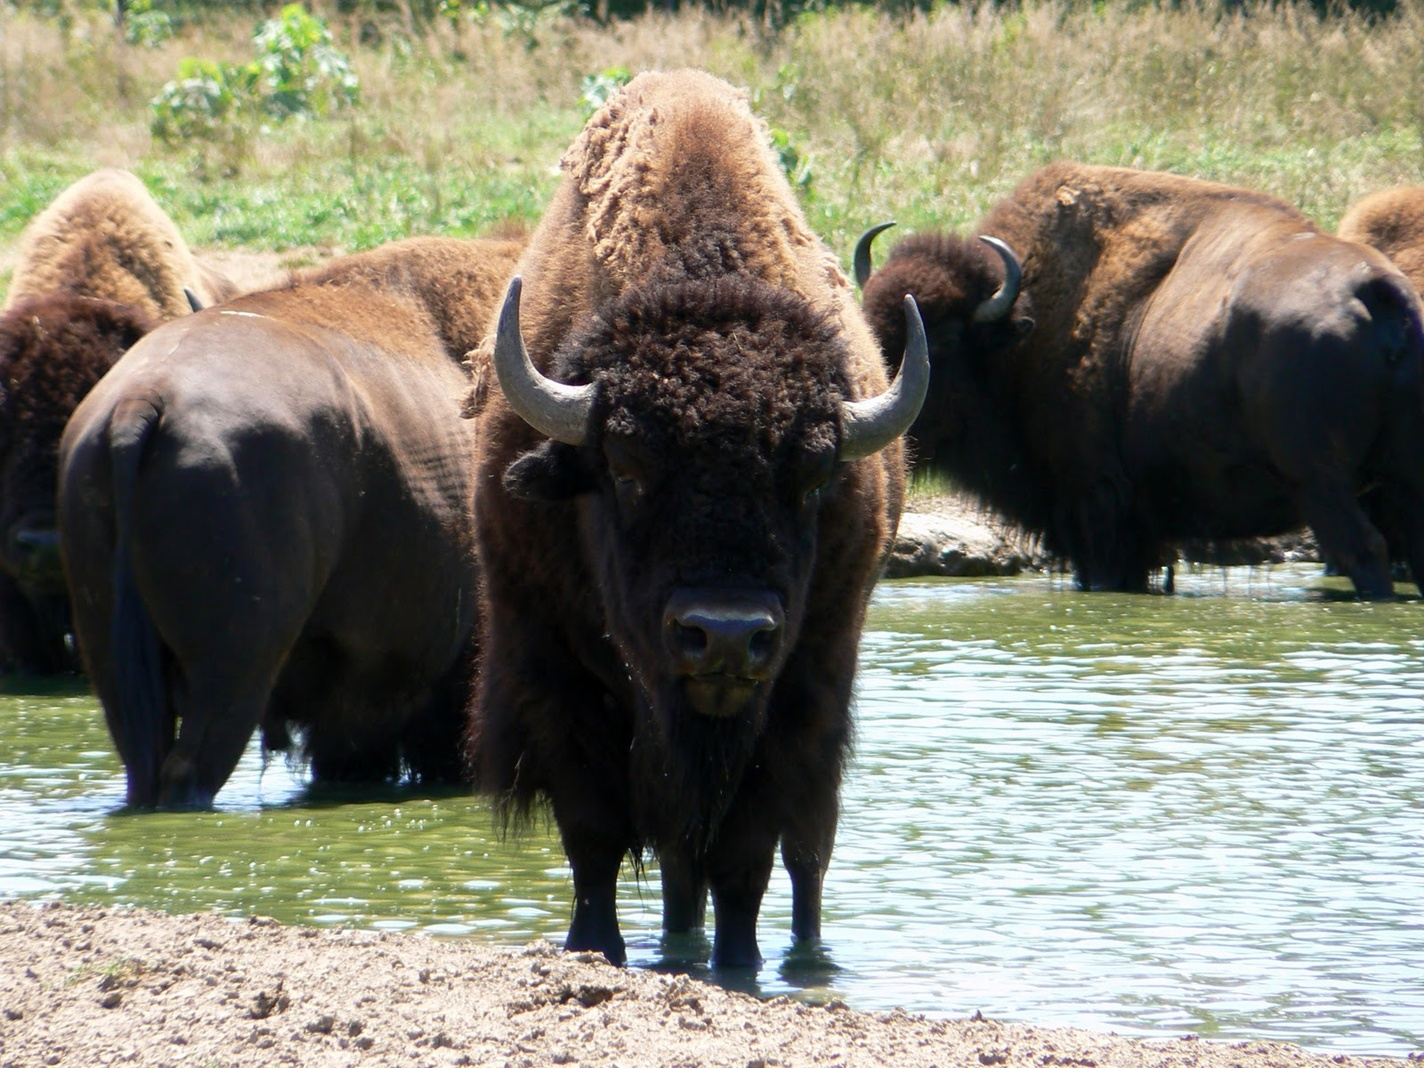 American Bison Wallpaper - WallpaperSafari